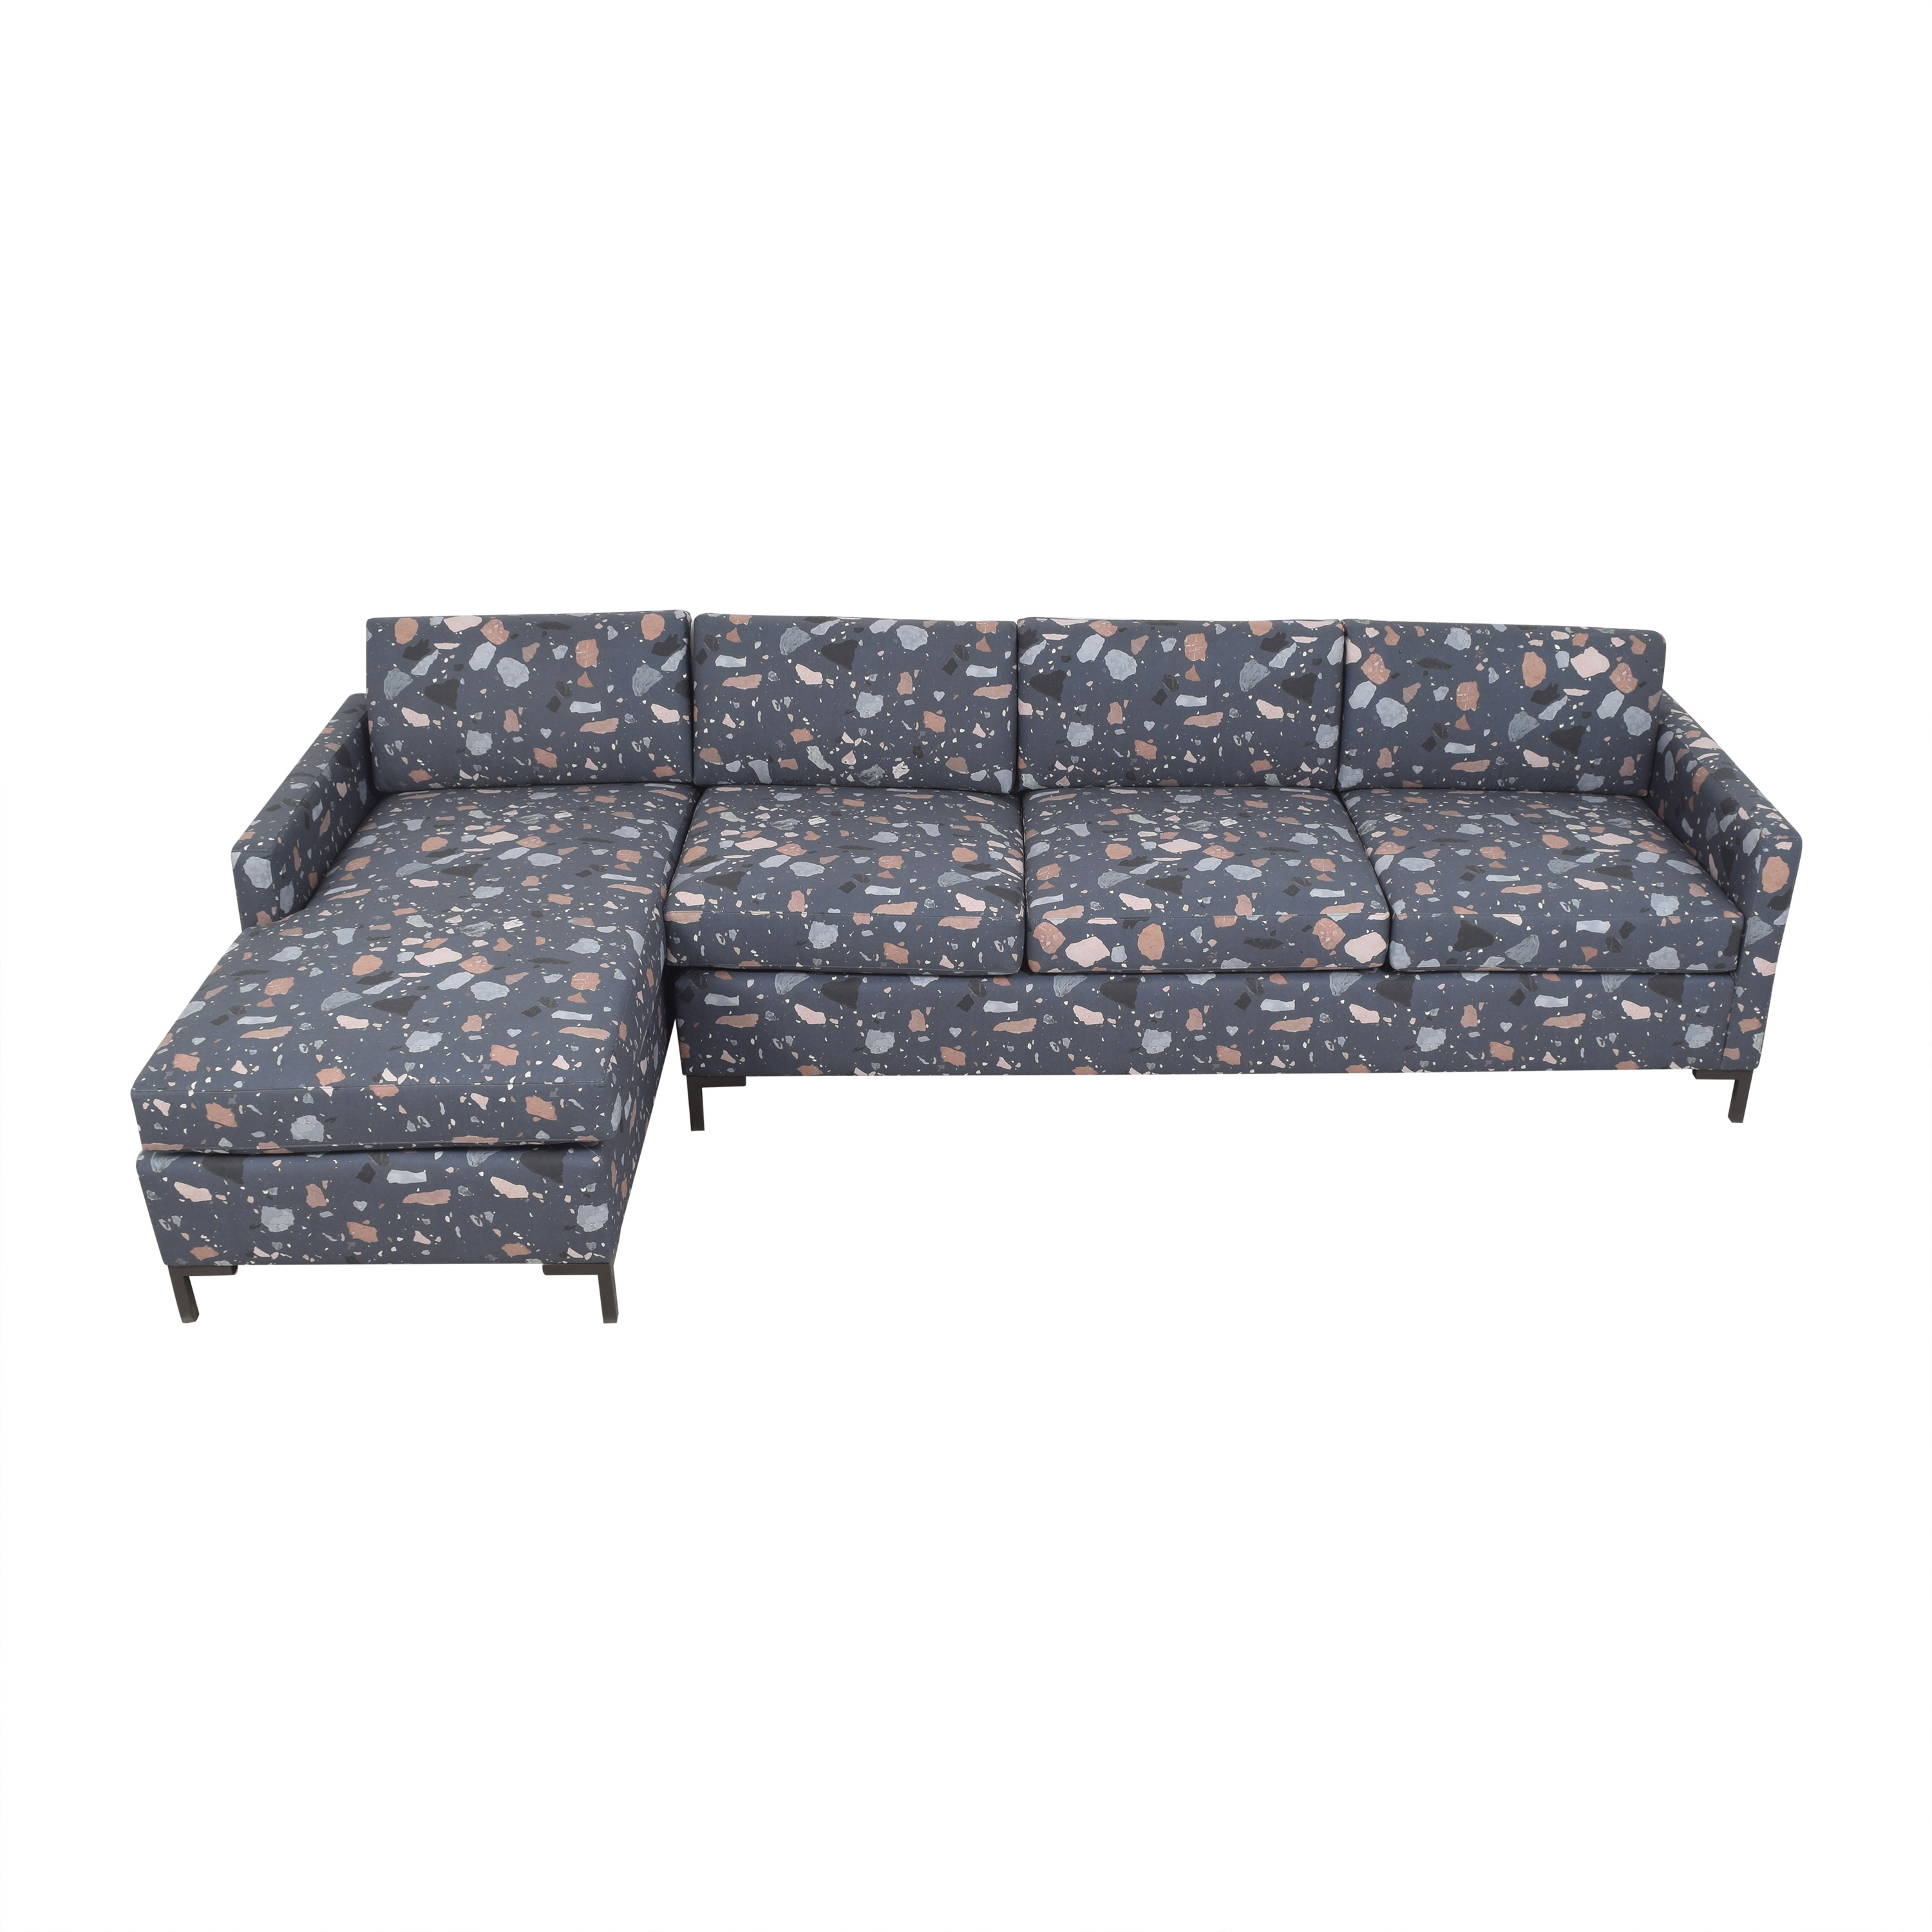 The Inside The Inside Modern Sectional Sofa with Chaise second hand